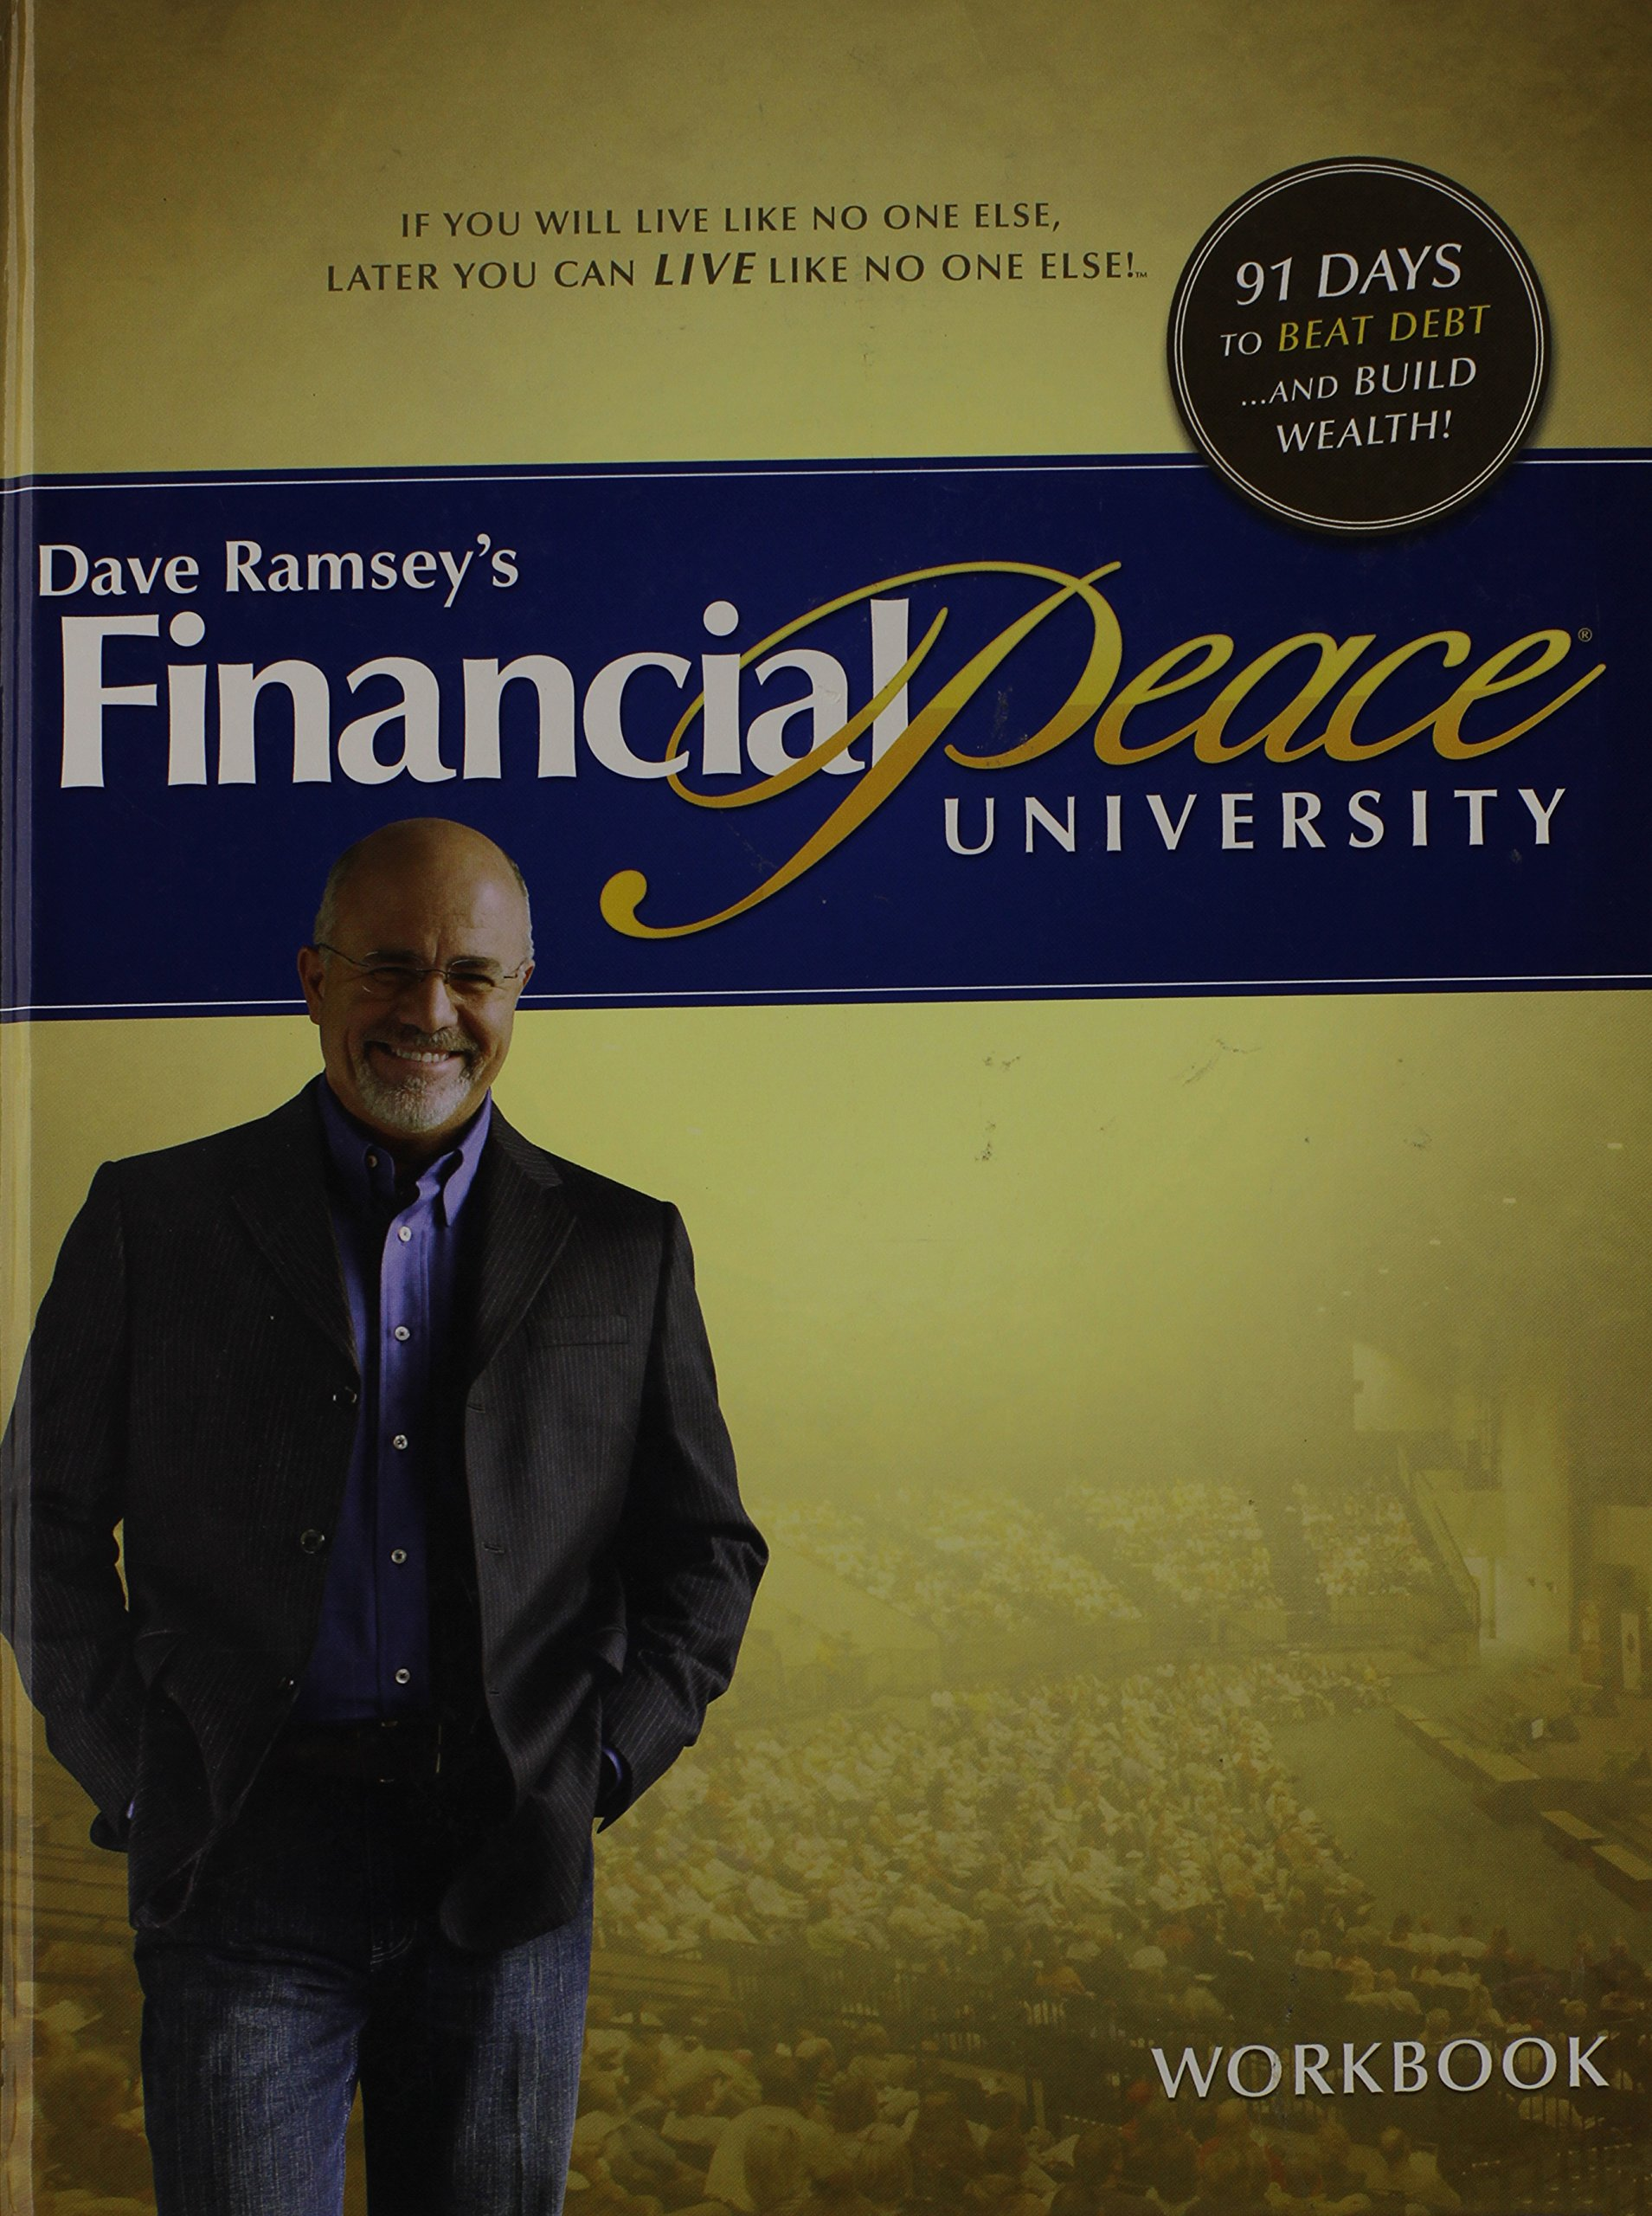 Worksheets Dave Ramsey Financial Peace Worksheets dave ramseys financial peace university workbook ramsey 9781934629048 amazon com books